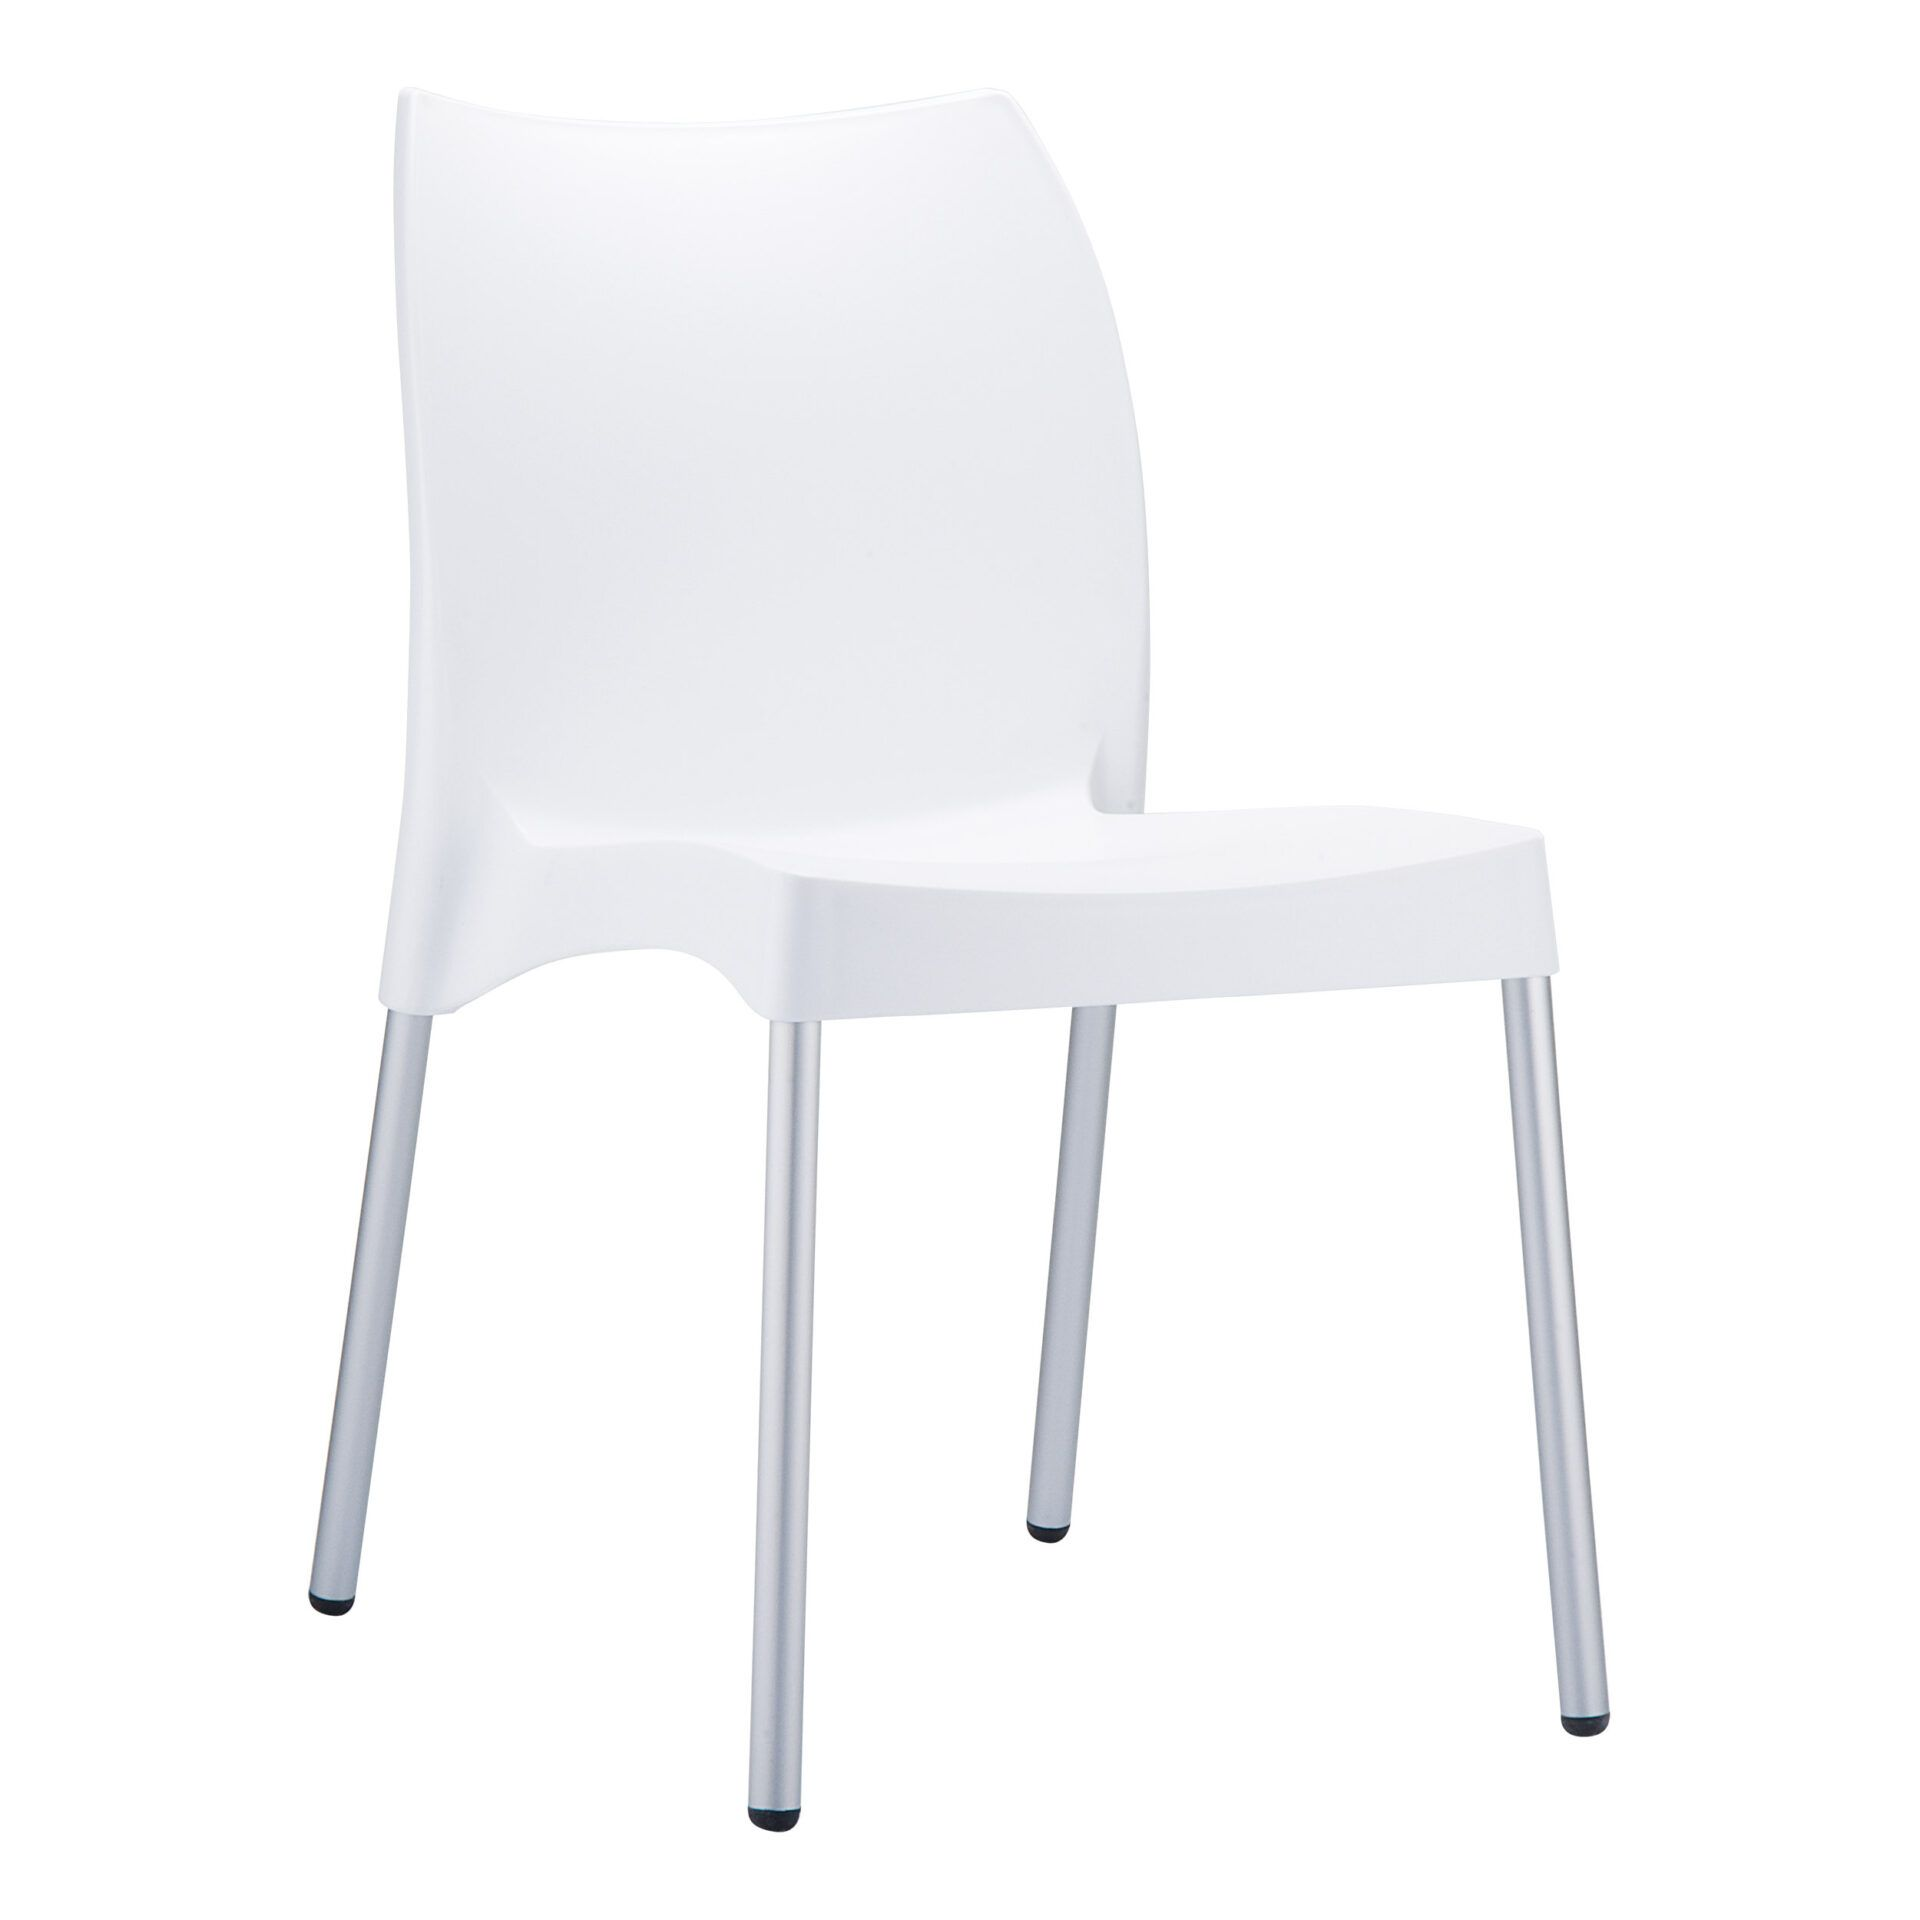 commercial outdoor hospitality seating vita chair white front side